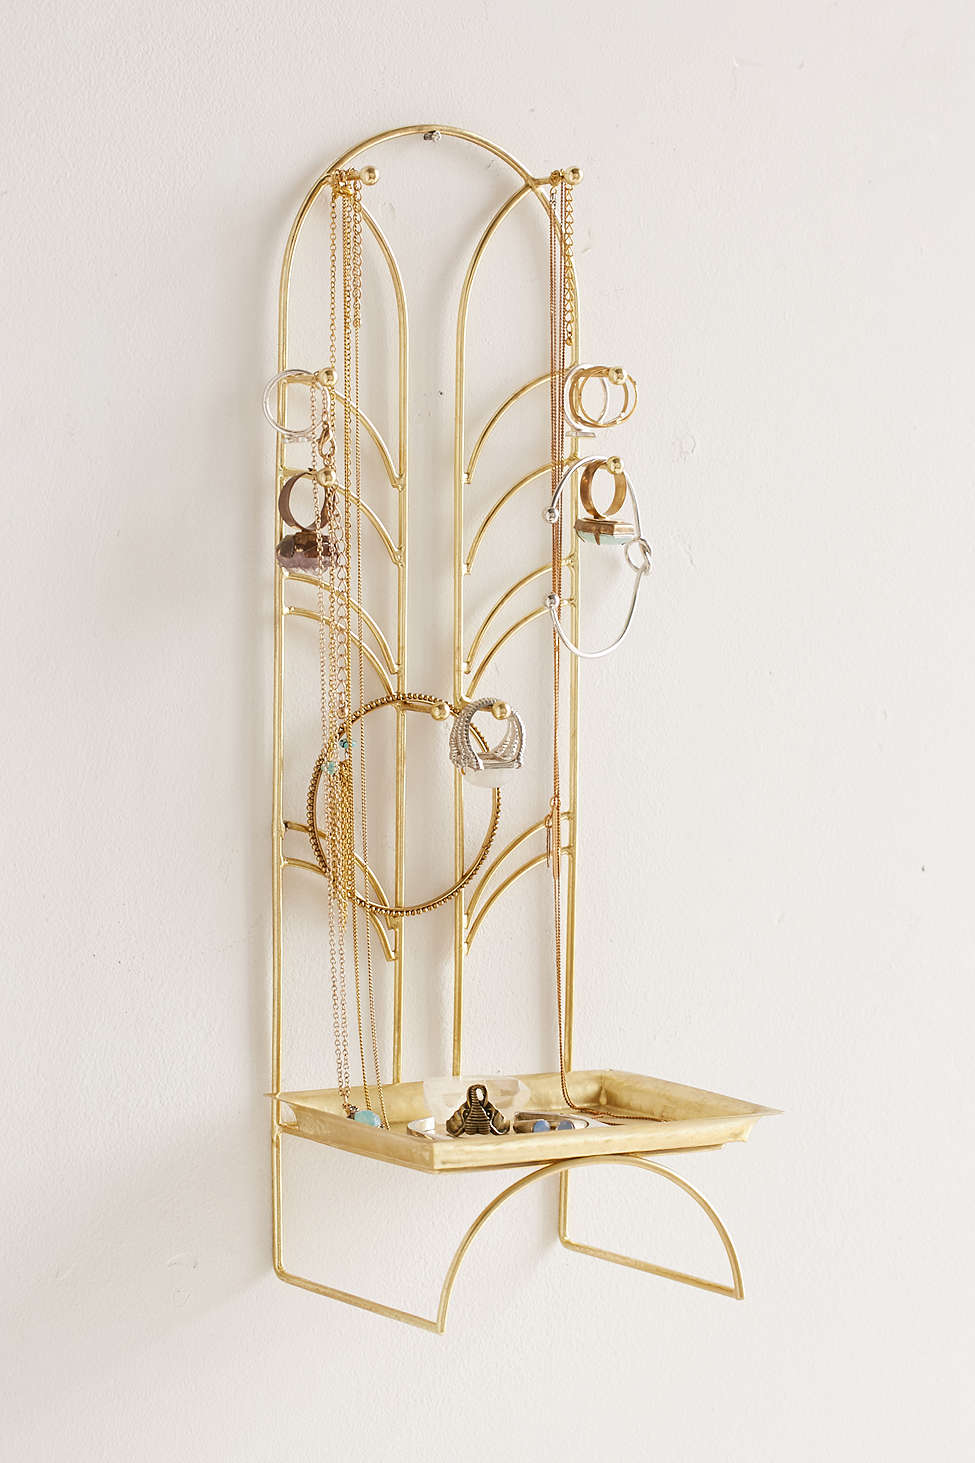 Vintage-style jewelry stand from Urban Outfitters